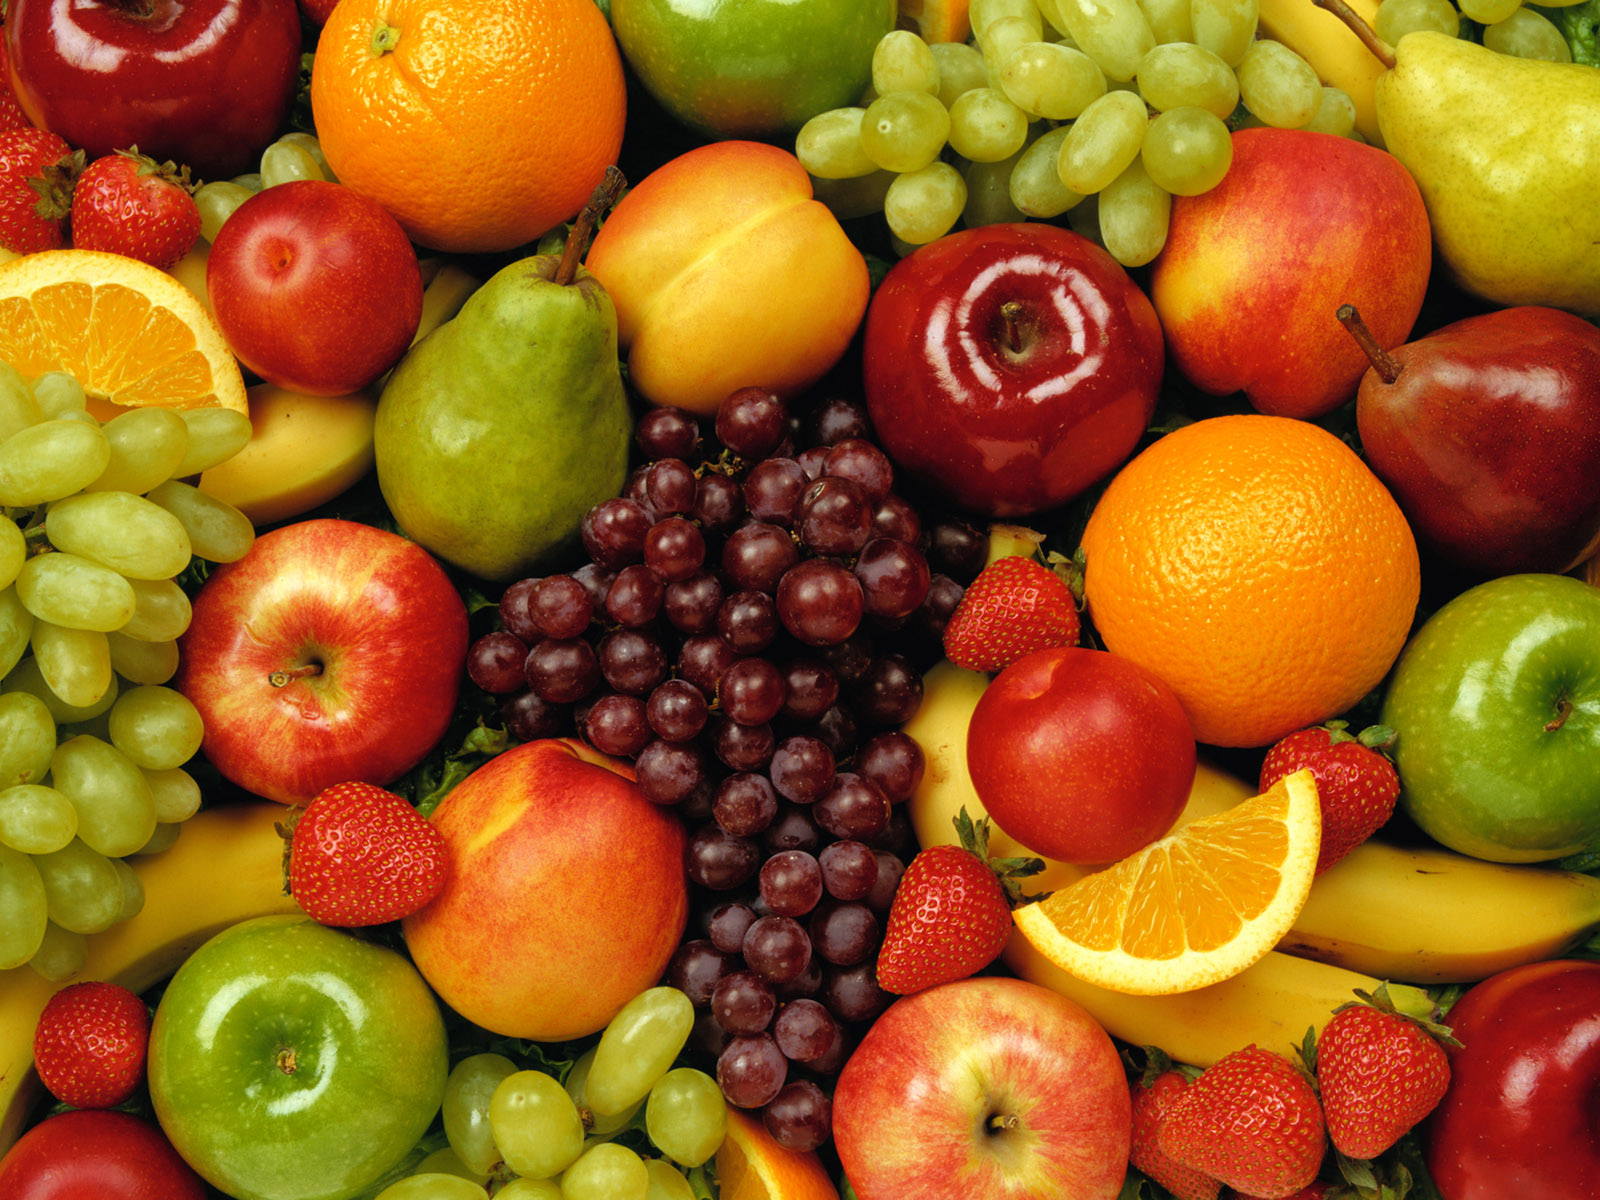 Hear My Voice/Mommy Blog: When to eat Fruits?